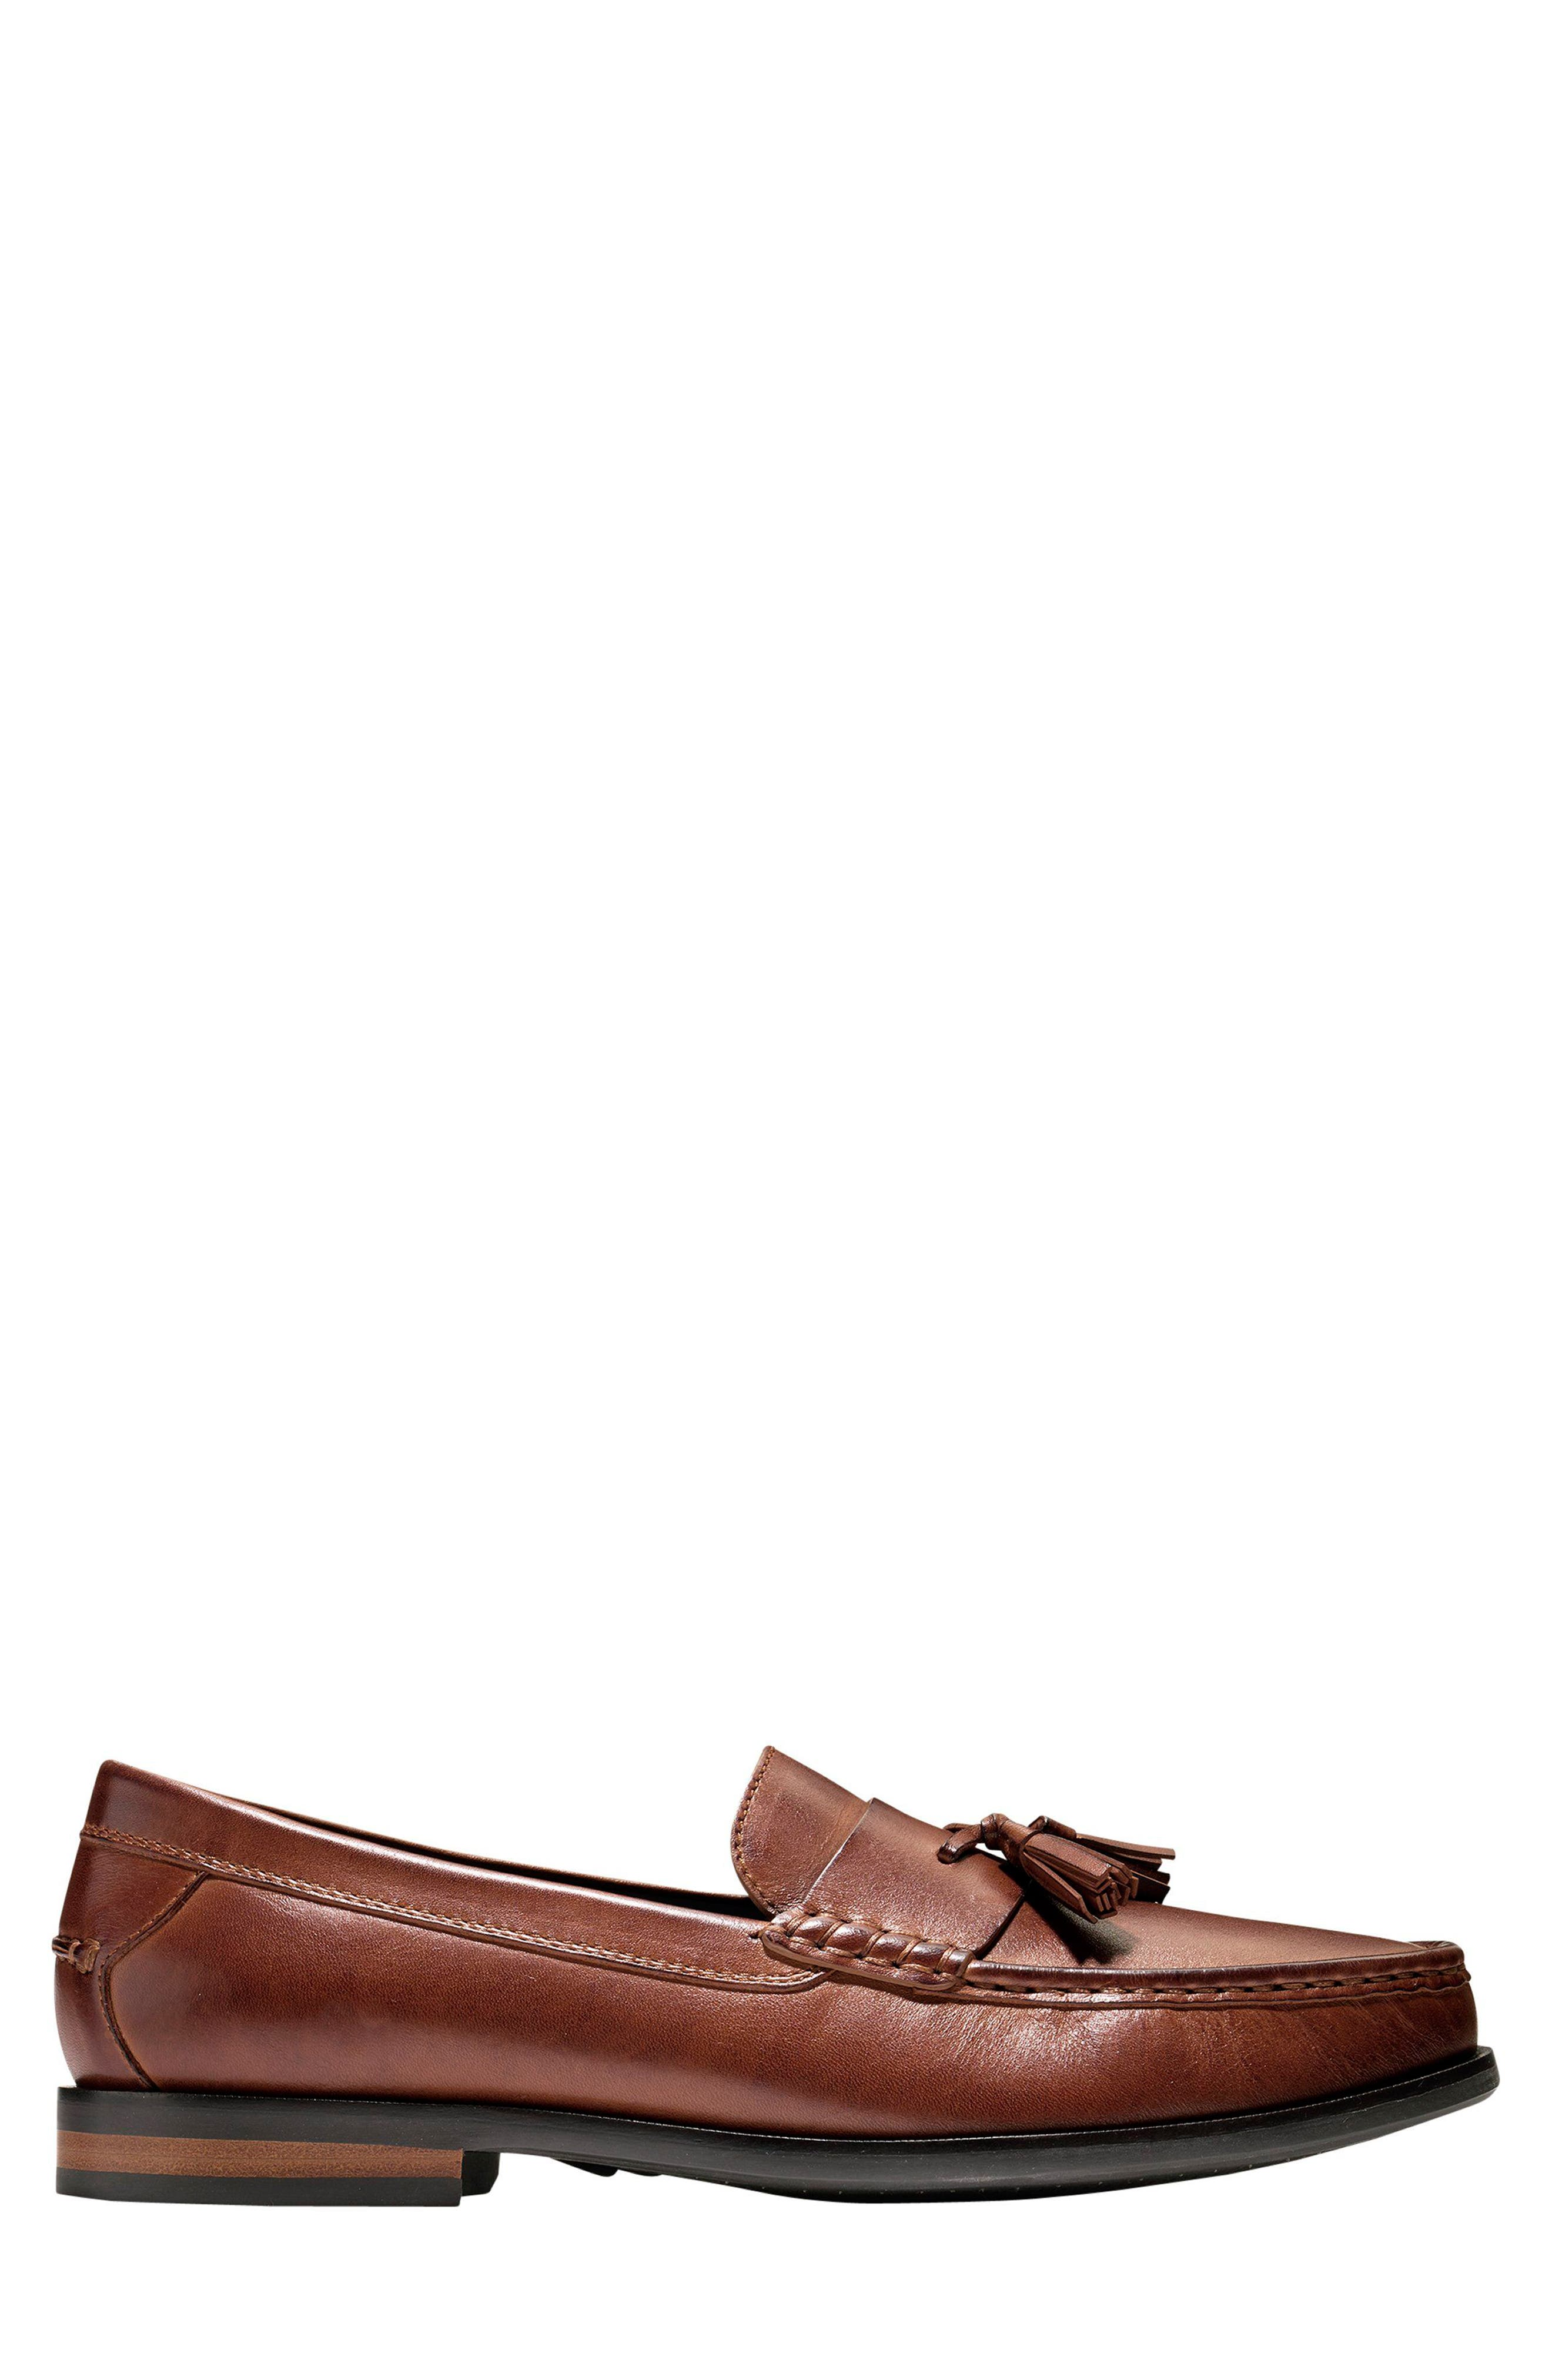 Alternate Image 3  - Cole Haan Pinch Friday Tassel Loafer (Men)